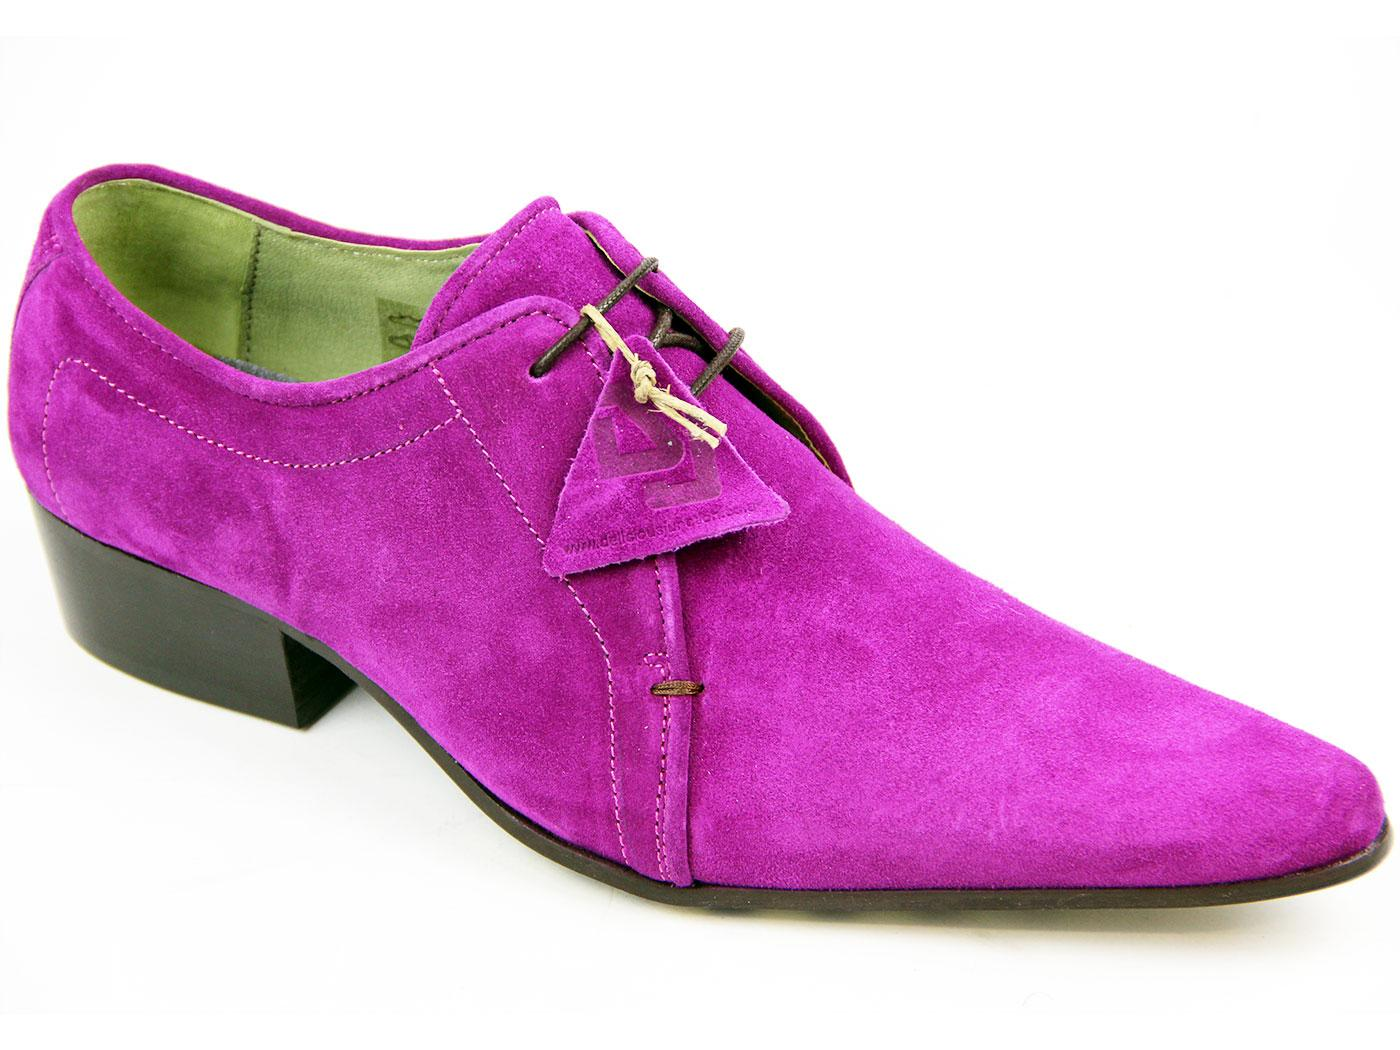 Matlock DELICIOUS JUNCTION Winklepicker Shoes P